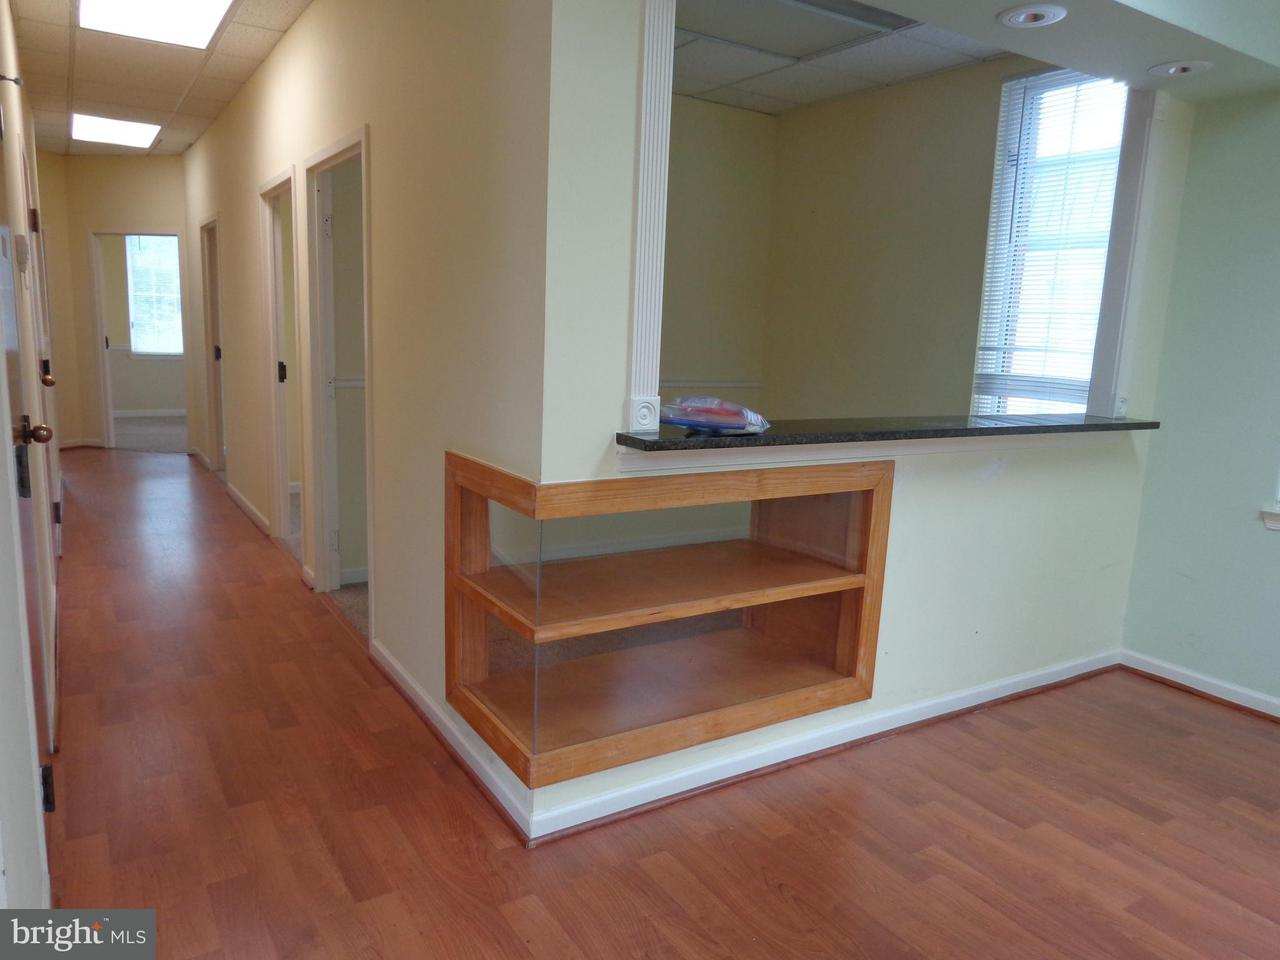 Other Residential for Rent at 7004 Little River Tpke #2f Annandale, Virginia 22003 United States